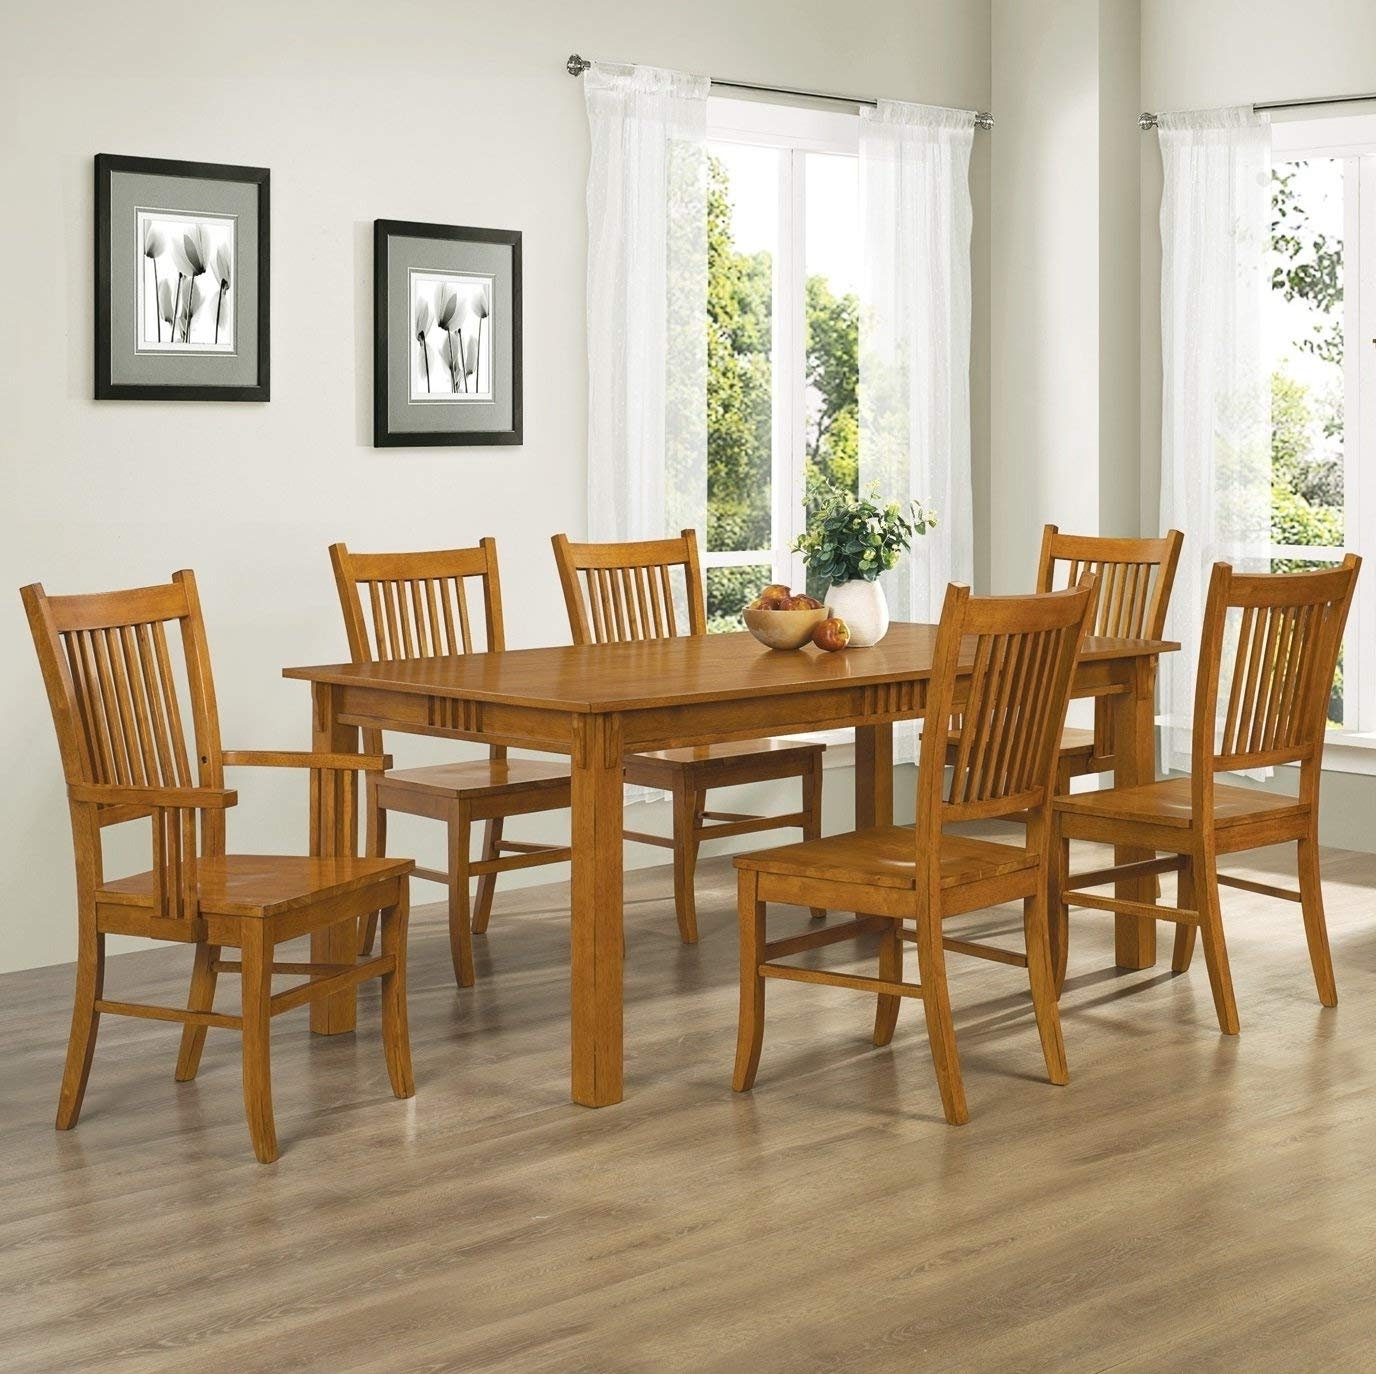 Amazon – Coaster Home Furnishings 7 Piece Mission Style Solid Throughout Trendy Craftsman 7 Piece Rectangle Extension Dining Sets With Arm & Side Chairs (View 12 of 25)